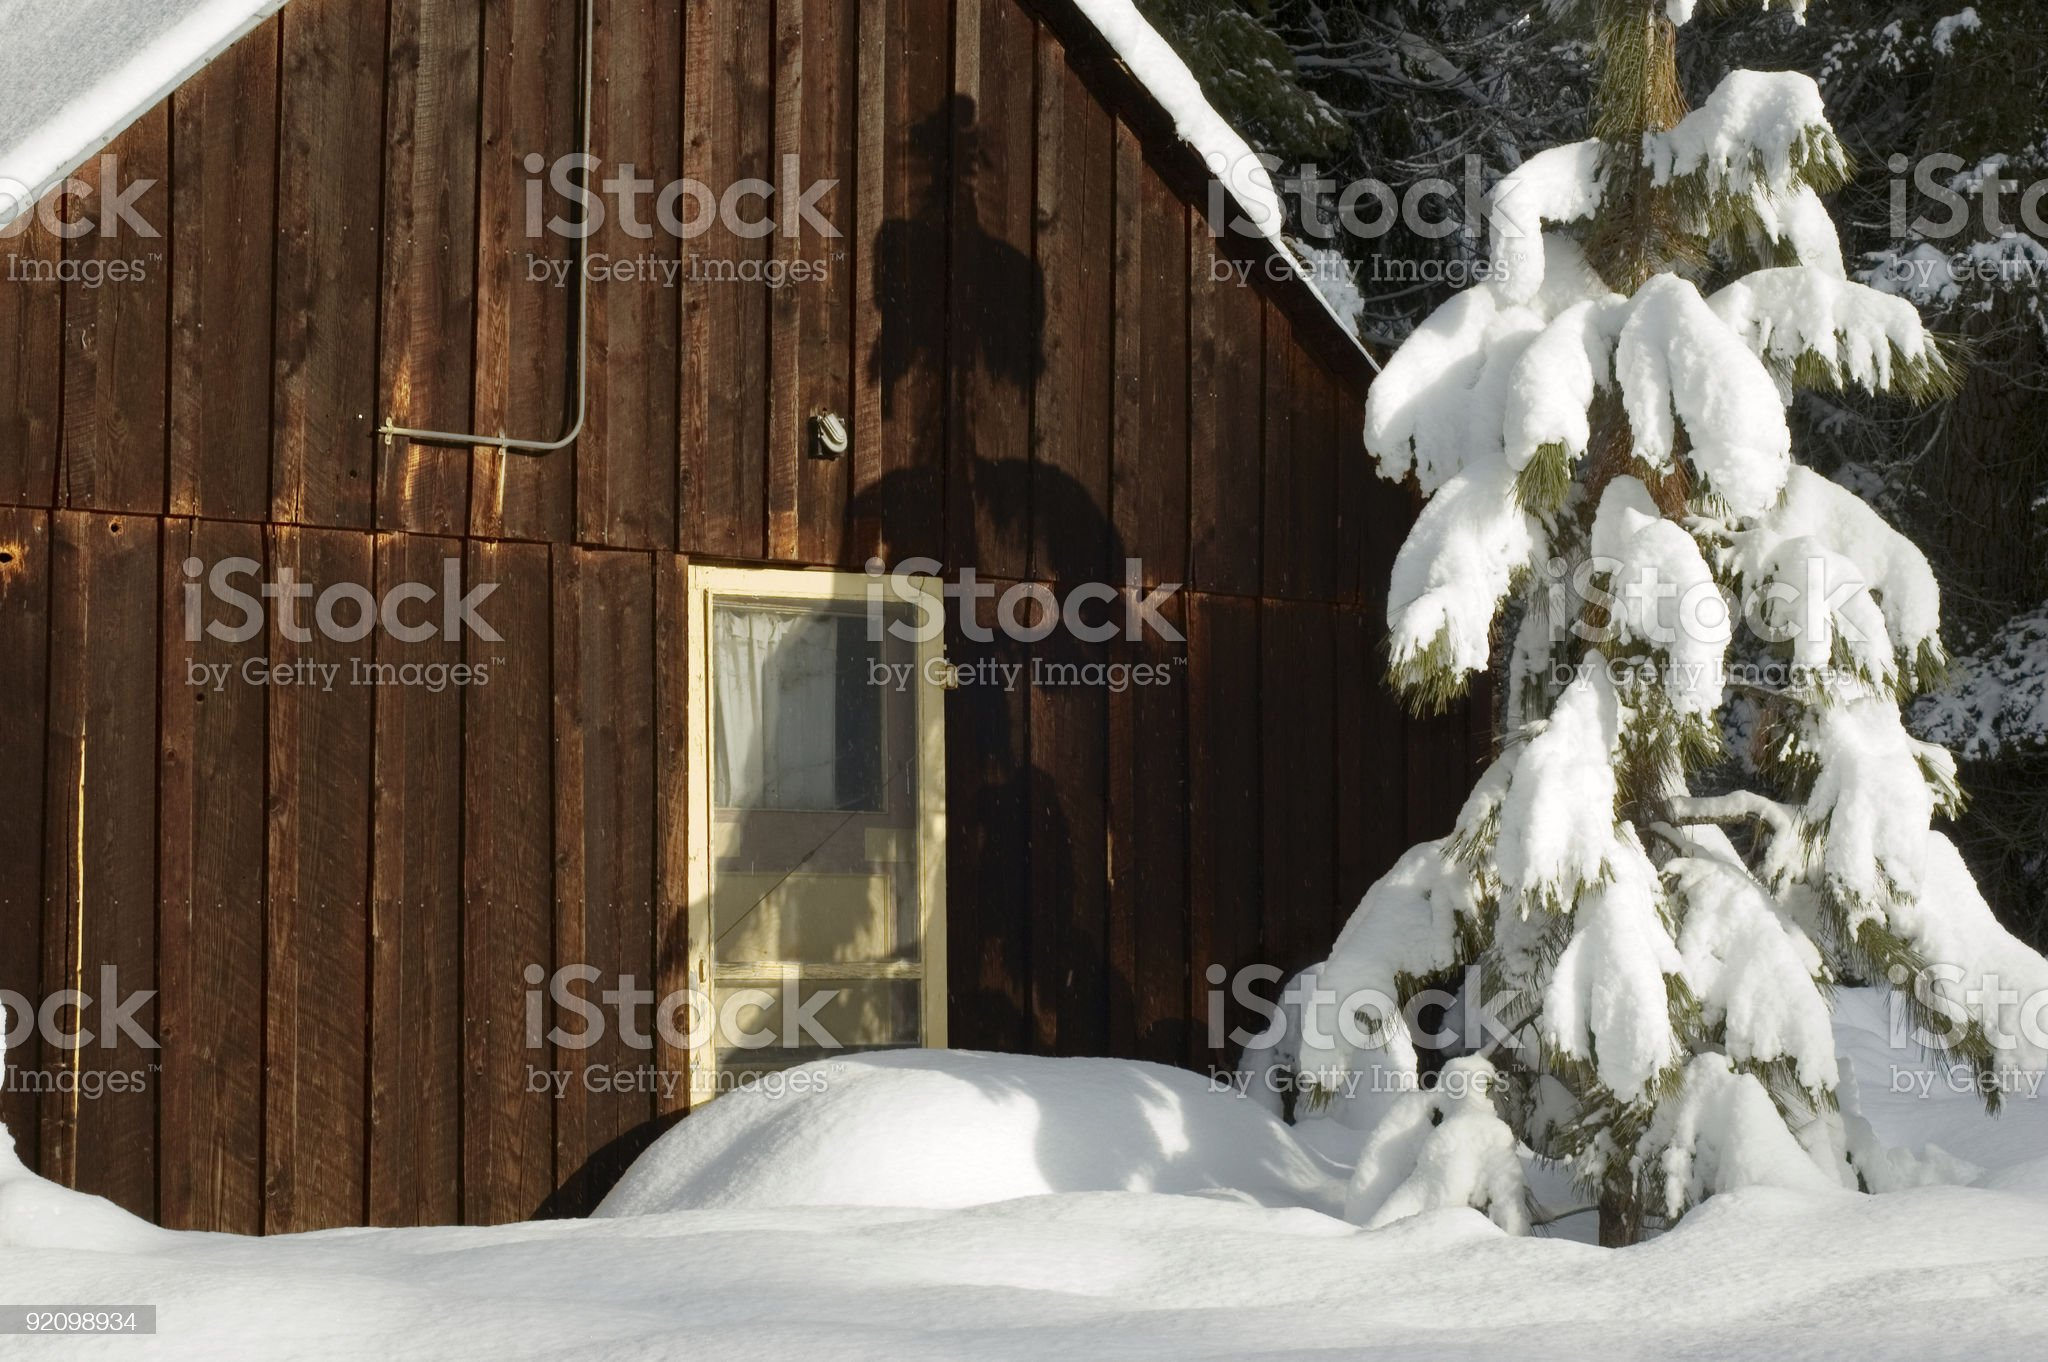 Rustic Cabin in the Snow royalty-free stock photo